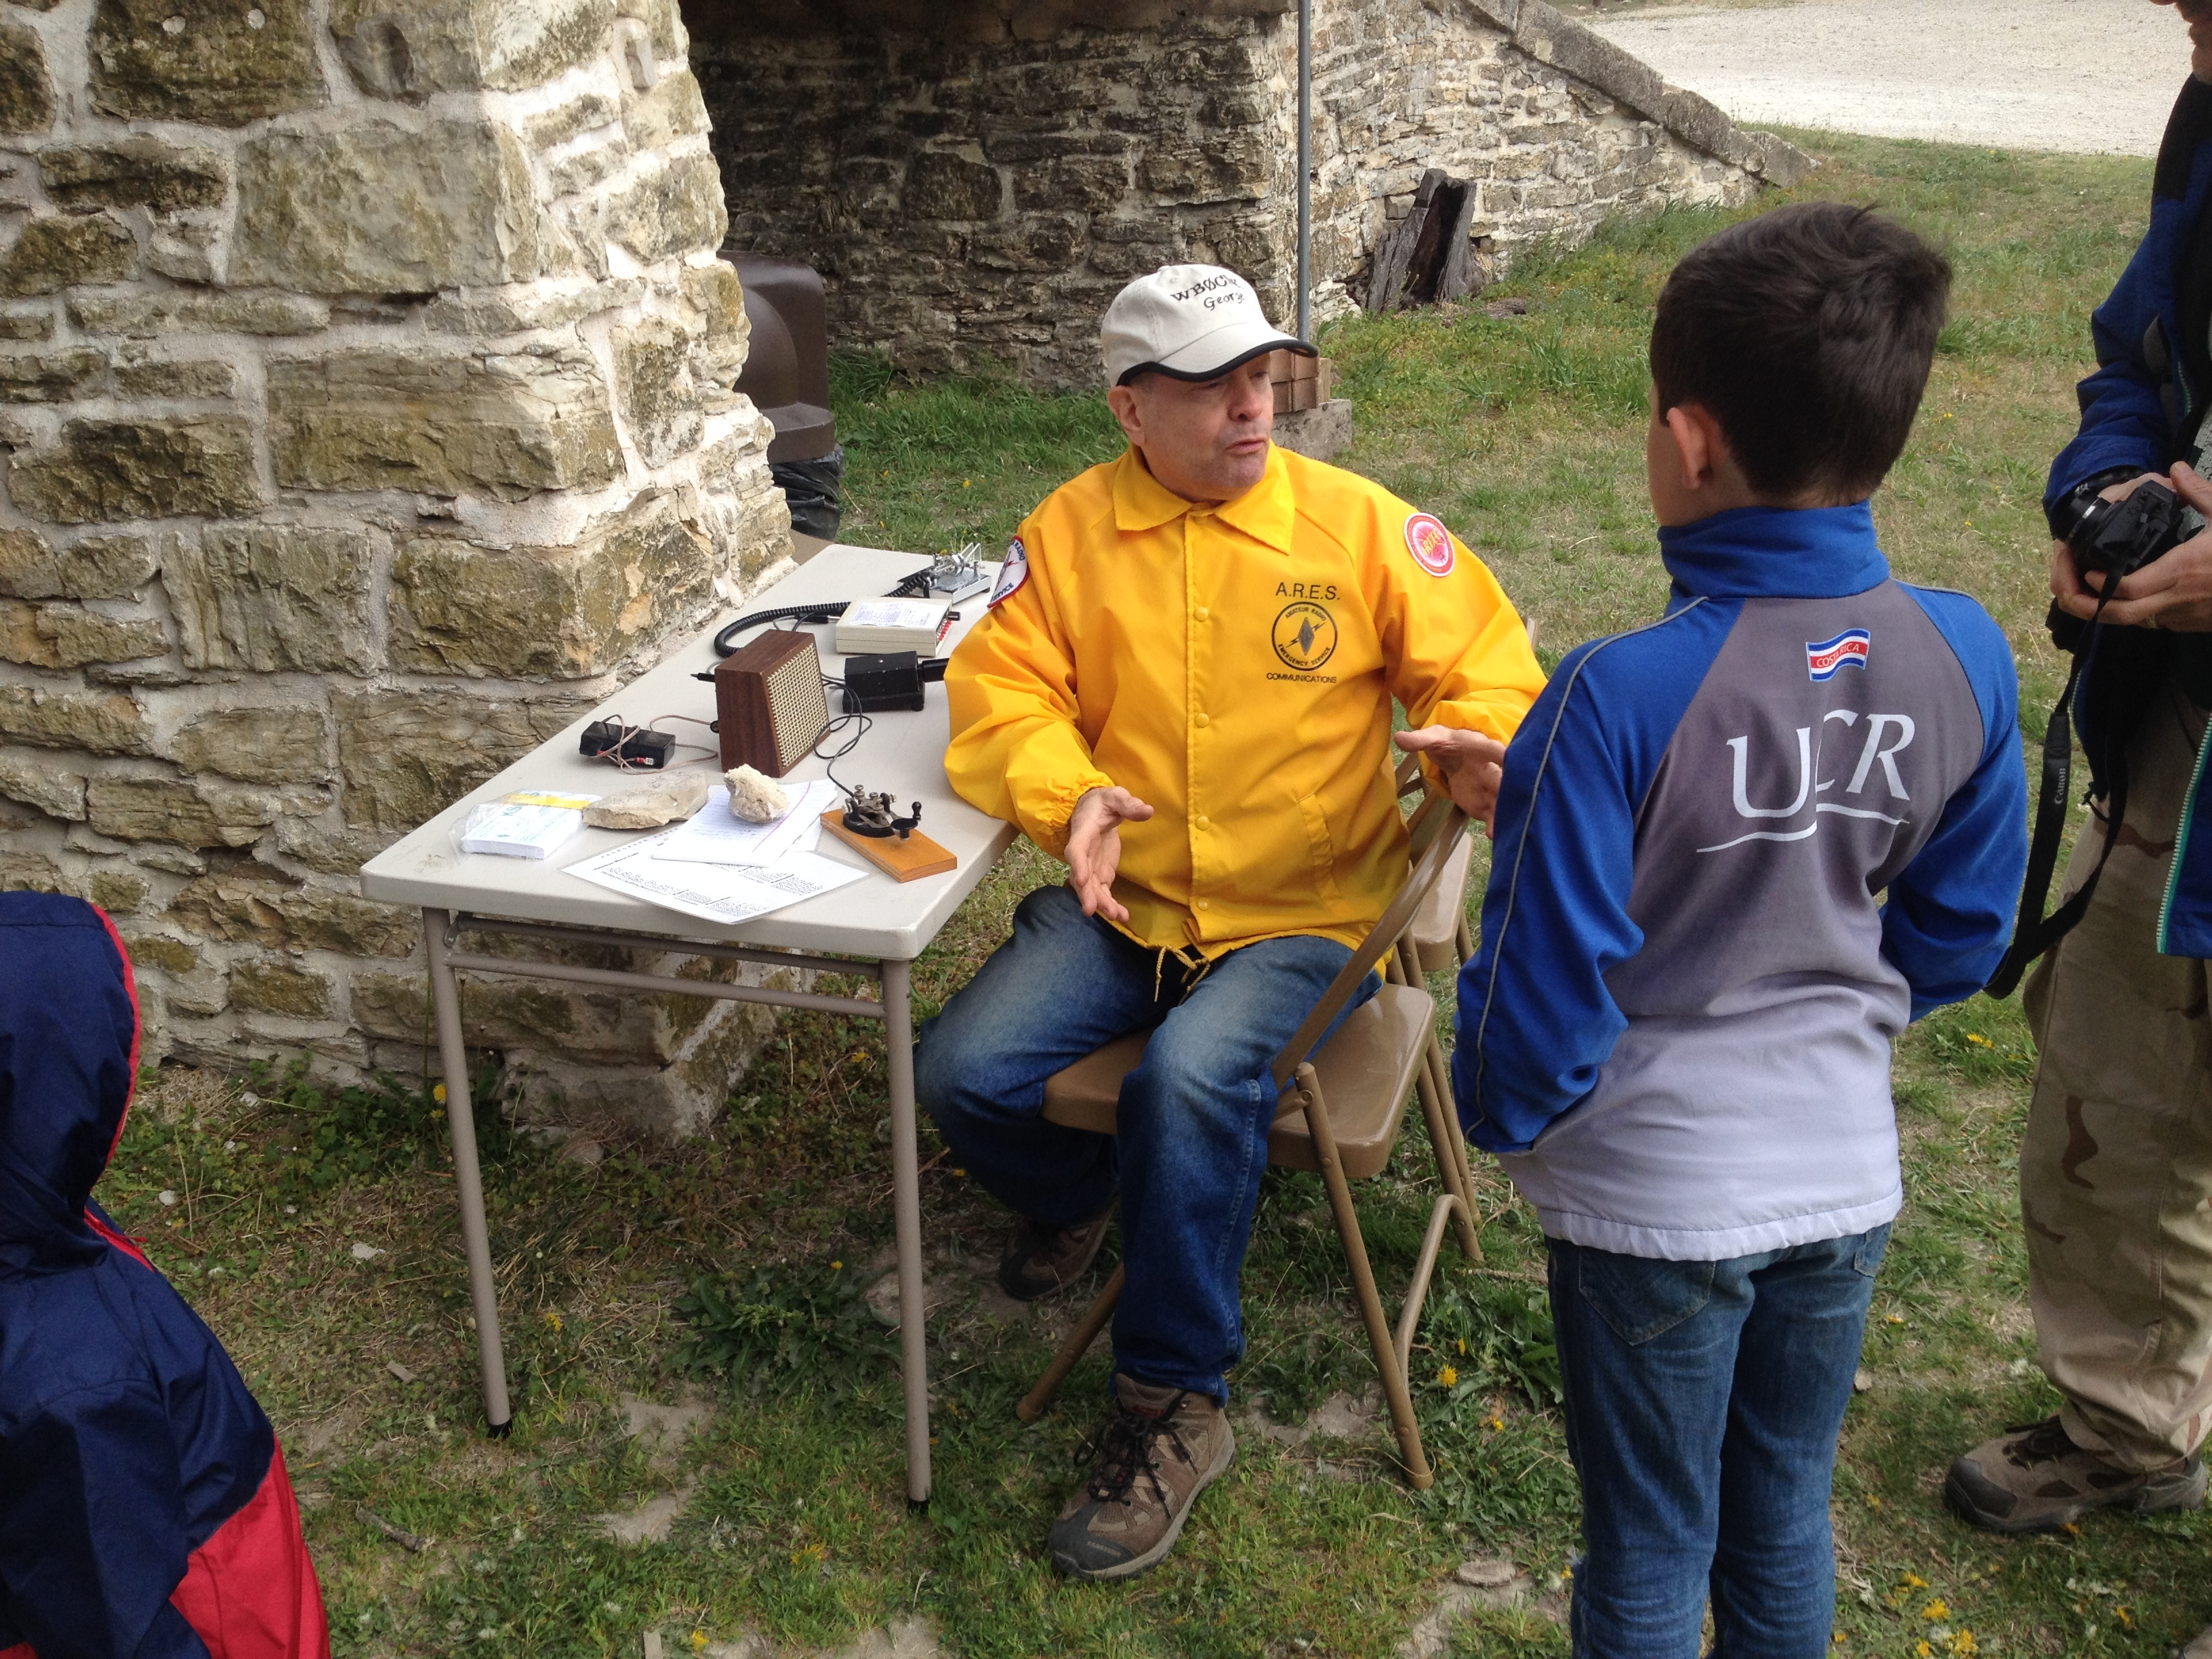 Kids learning about Morse Code and HAM radio technology during the Junior Ranger Day program